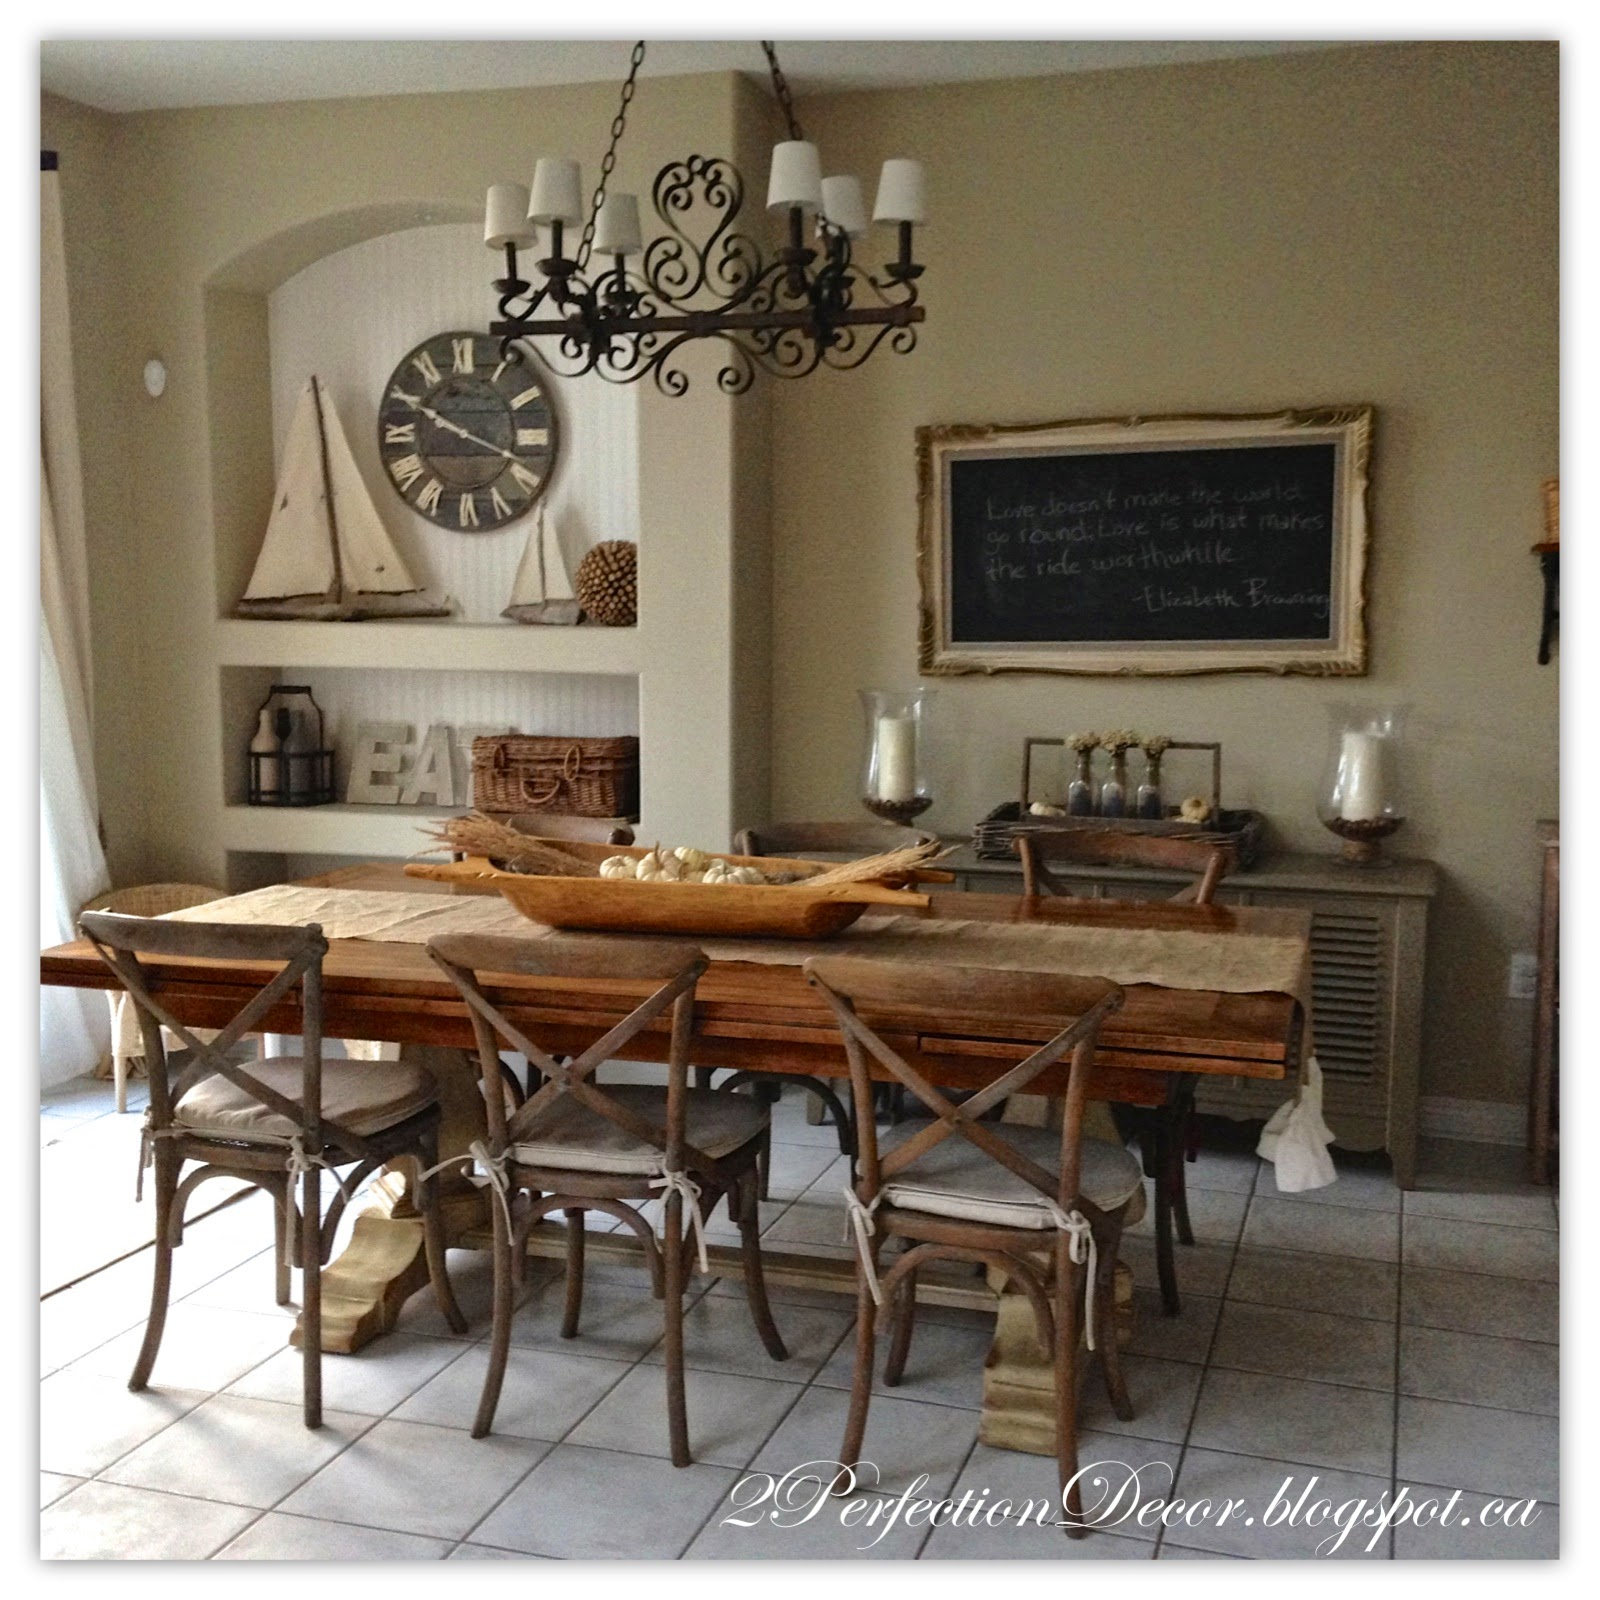 Decoration For Kitchen Table: 2Perfection Decor: Kitchen Eating Area Reveal